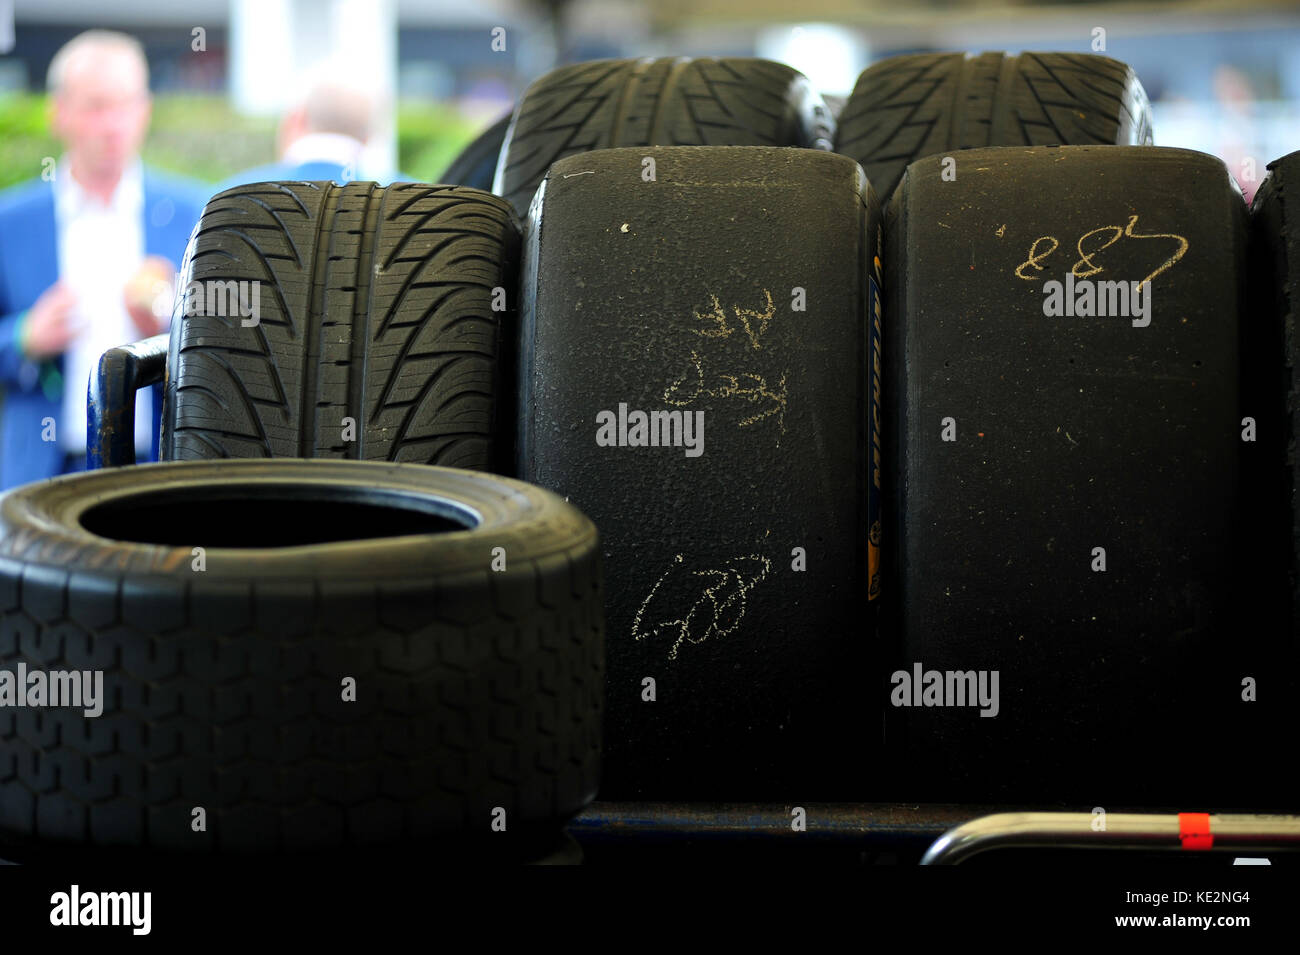 Stack Of Tires Stock Photos & Stack Of Tires Stock Images ... Race Tire Stack